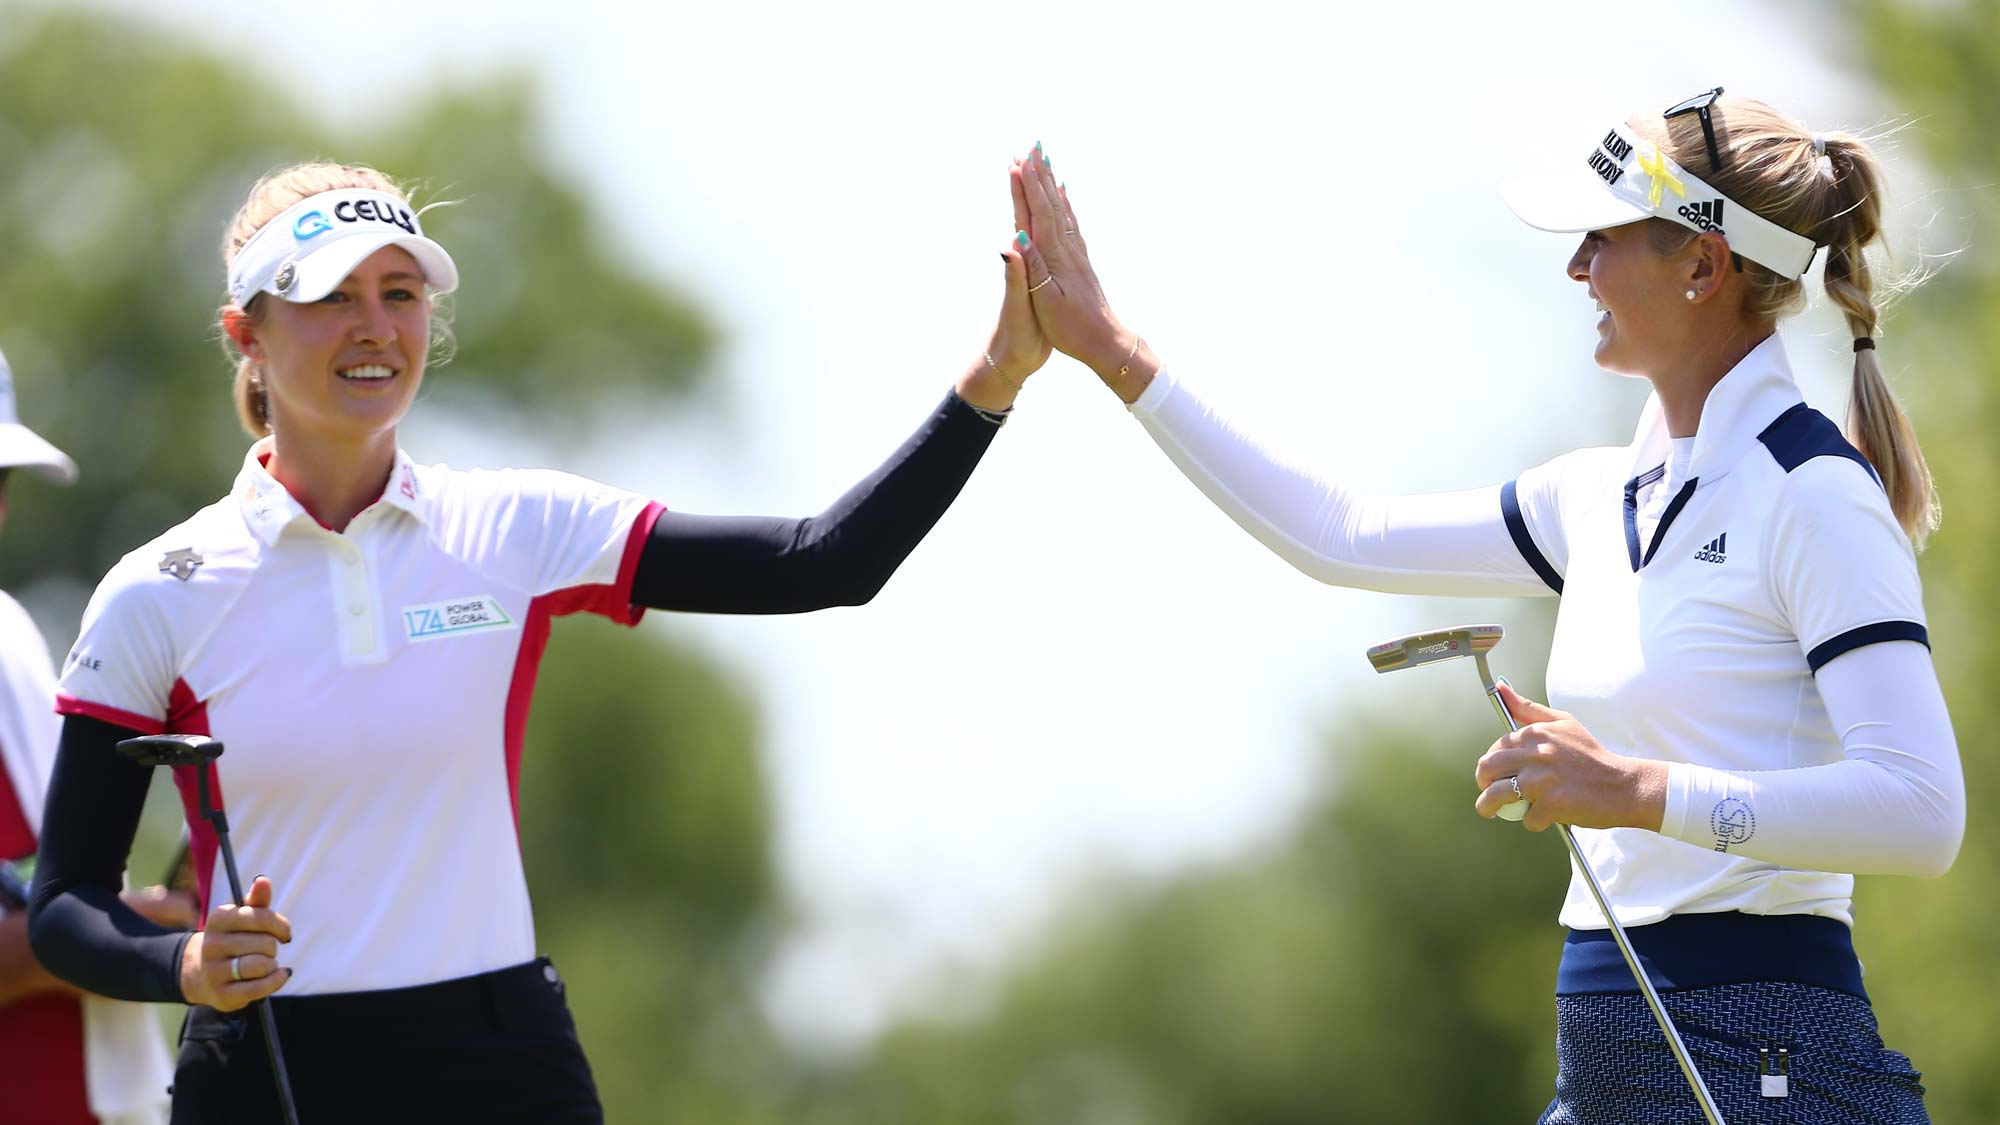 Nelly Korda (L) high five Jessica Korda on the eighth hole during the first round of the Dow Great Lakes Bay Invitational